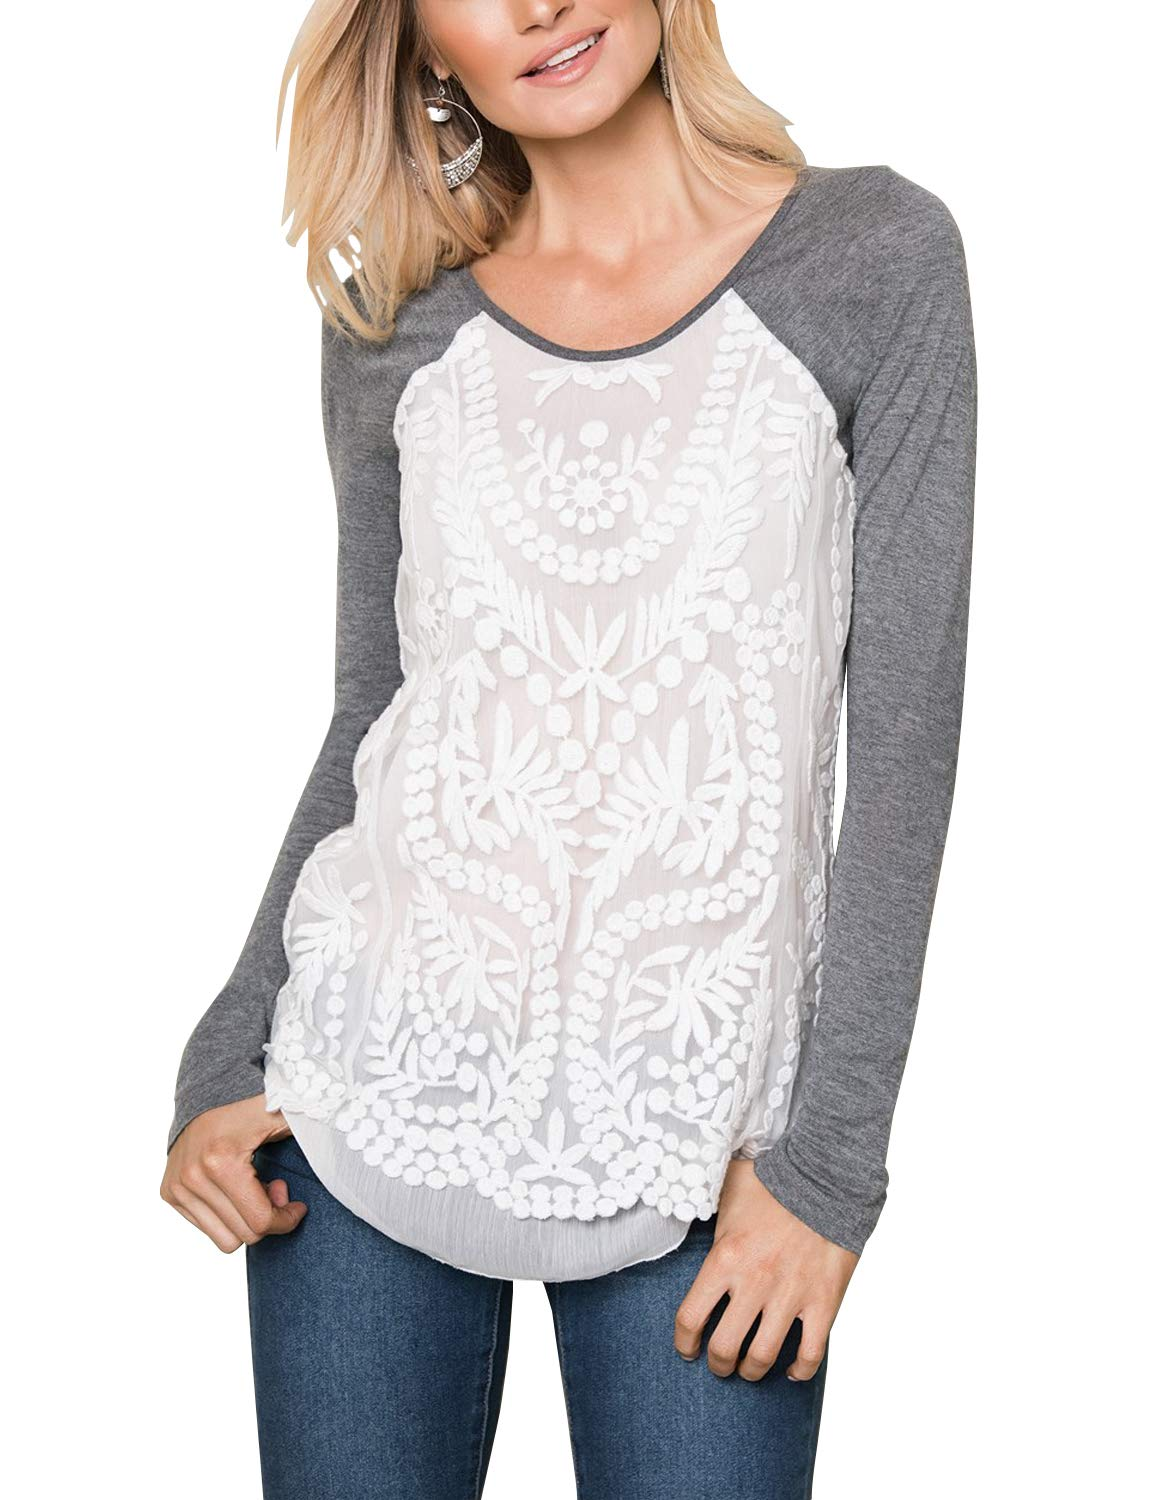 Blooming Jelly Womens Long Sleeve Round Neck Raglan Lace Shirt Top Grey